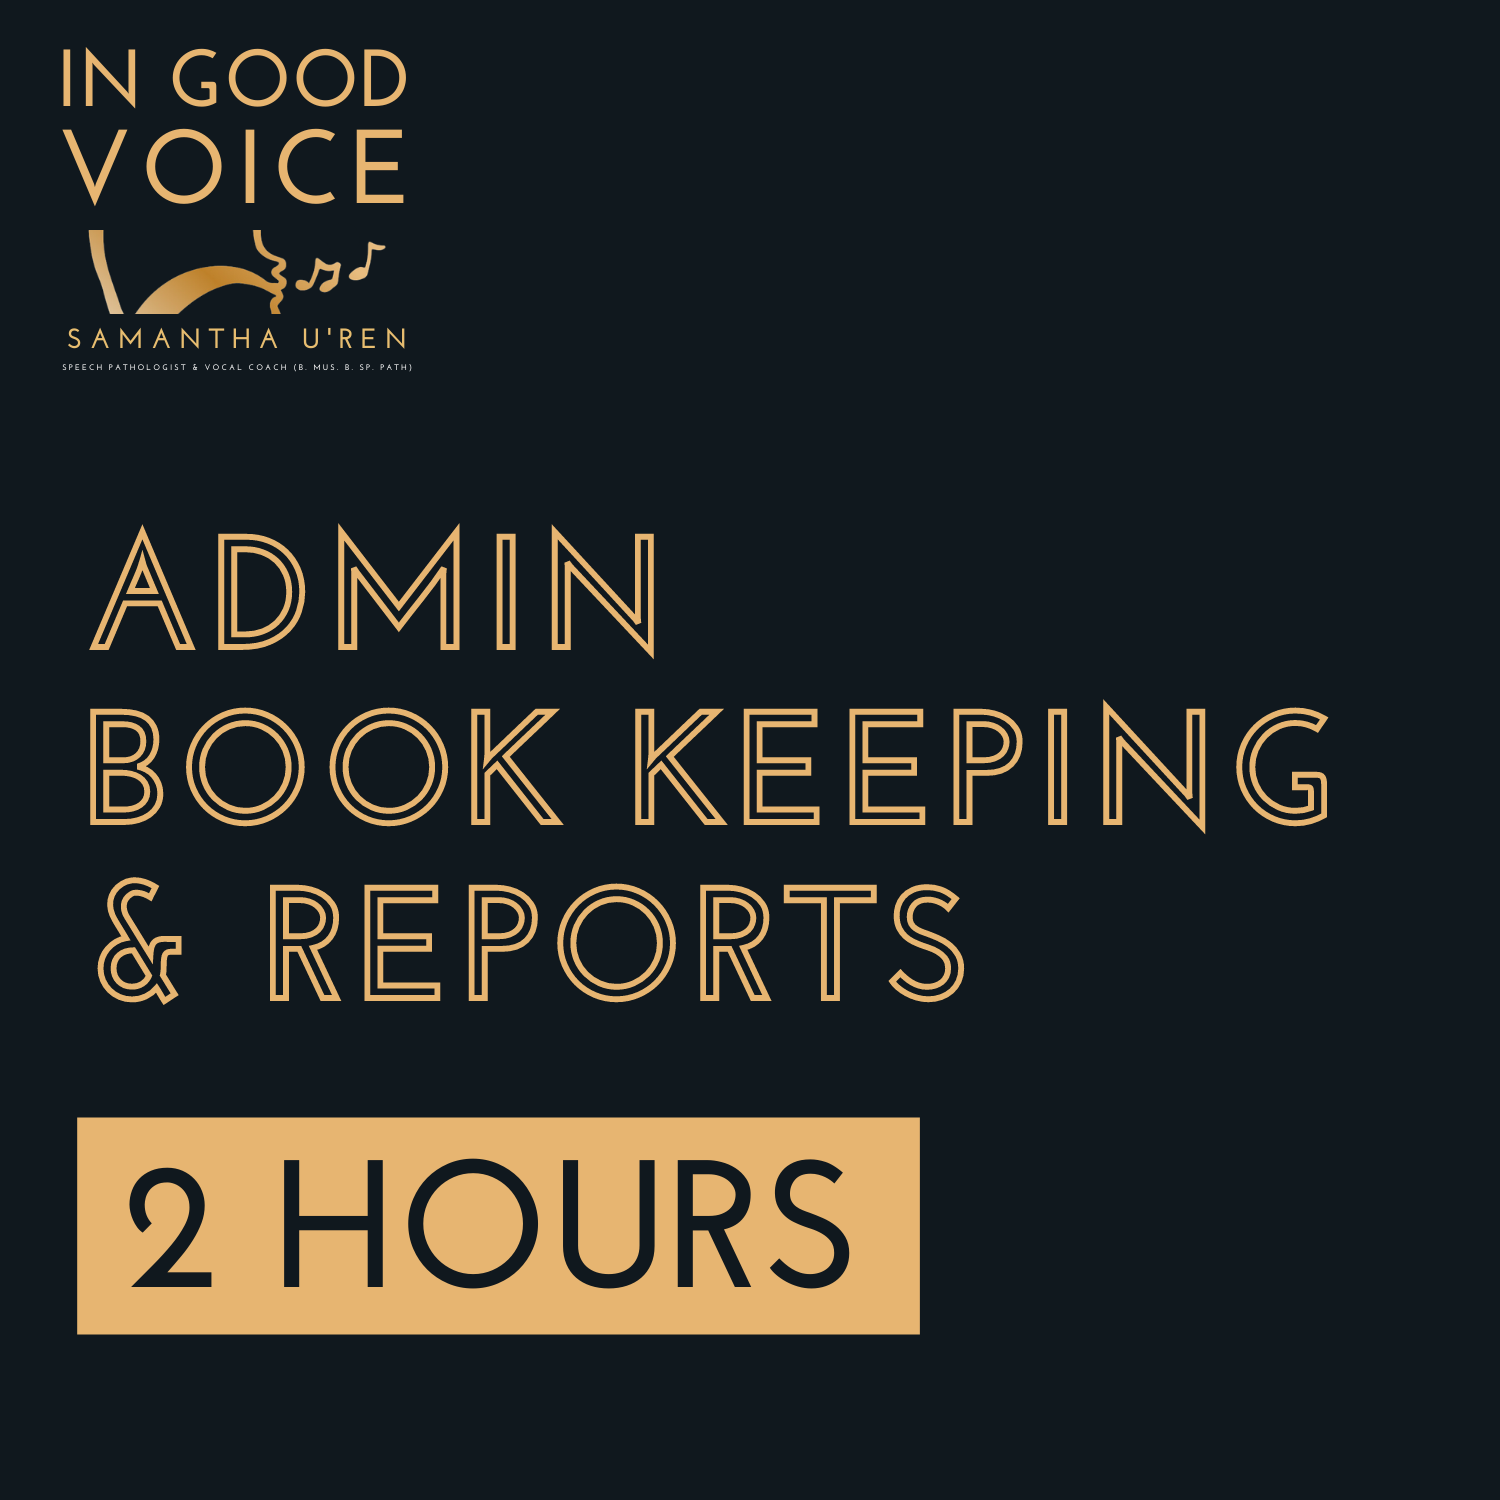 Admin, Book keeping and Reports